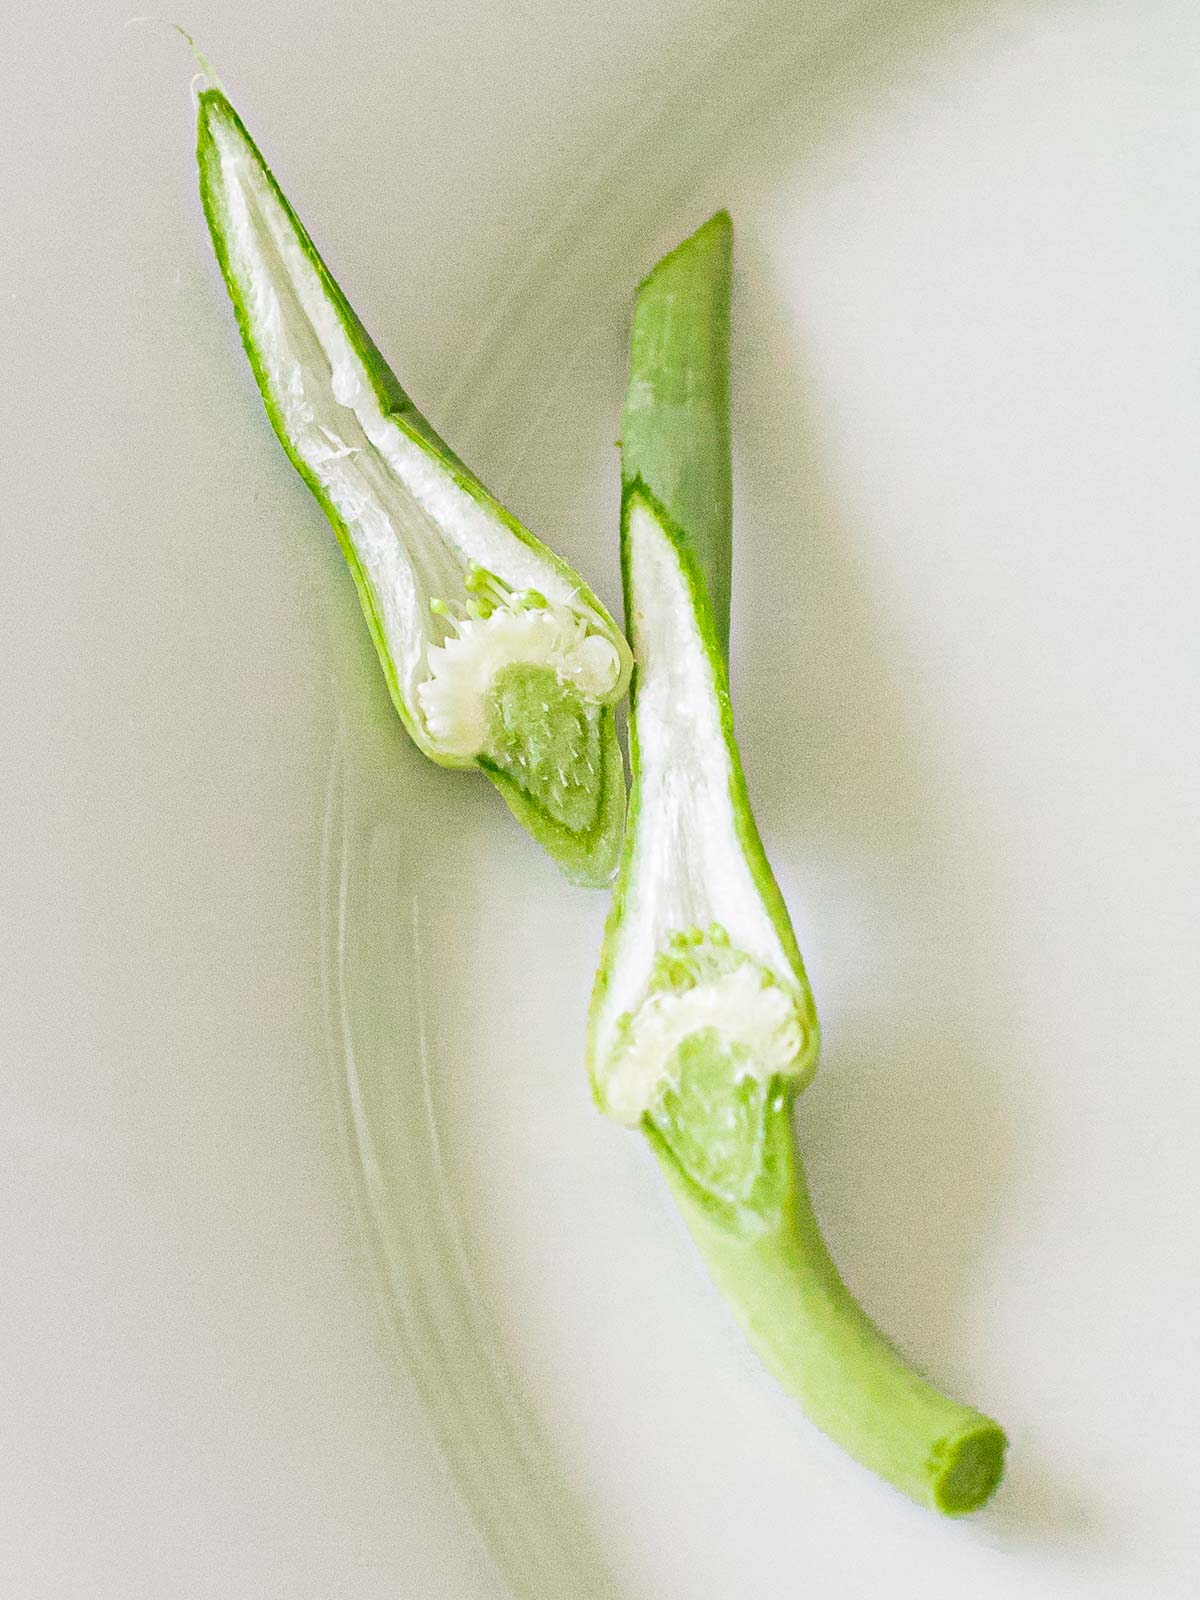 garlic scape bulb cut in half